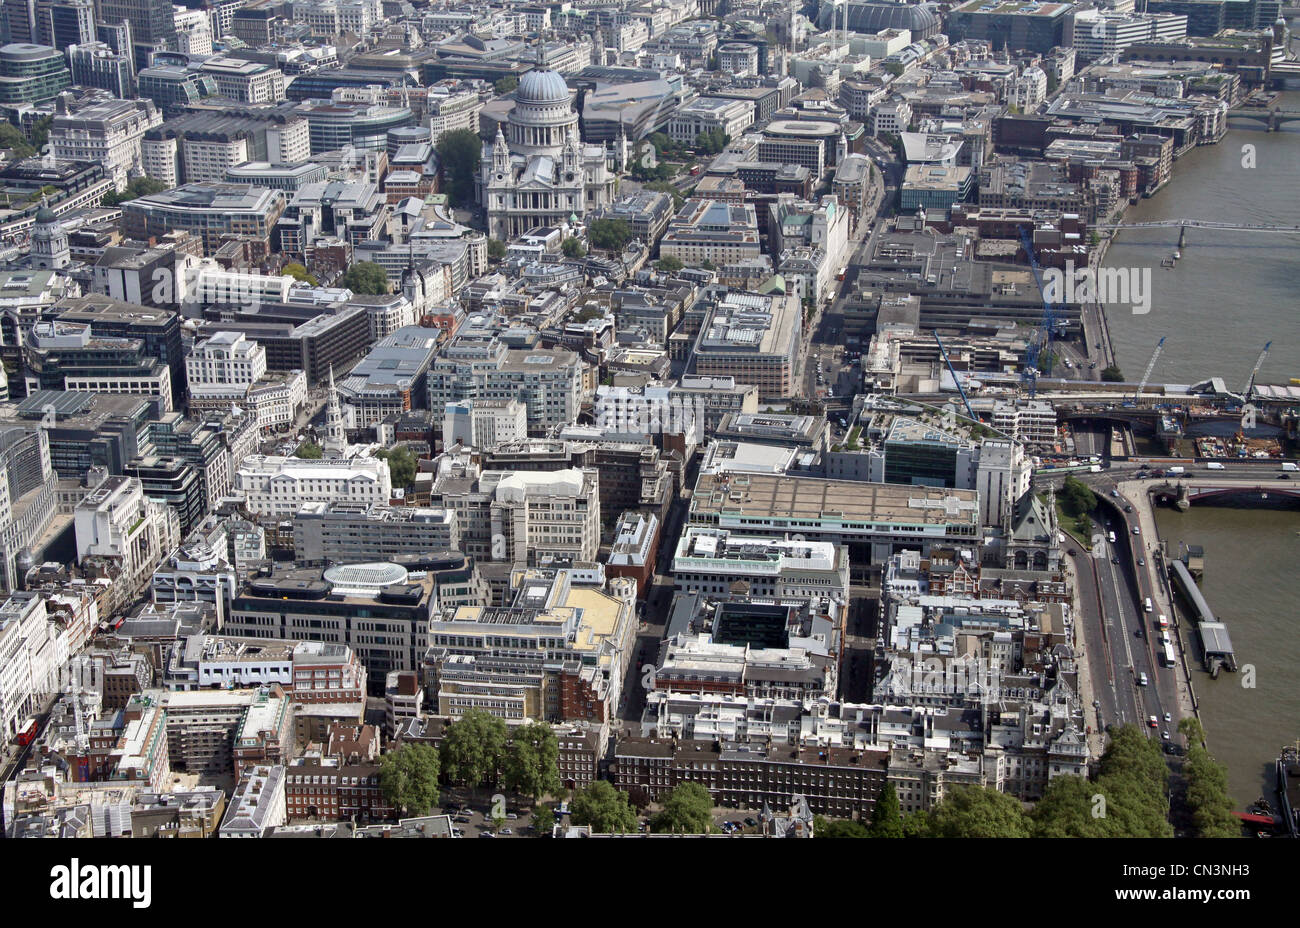 Aerial view of Tudor Street, Blackfriars, looking east along the north bank of the Thames, London - Stock Image